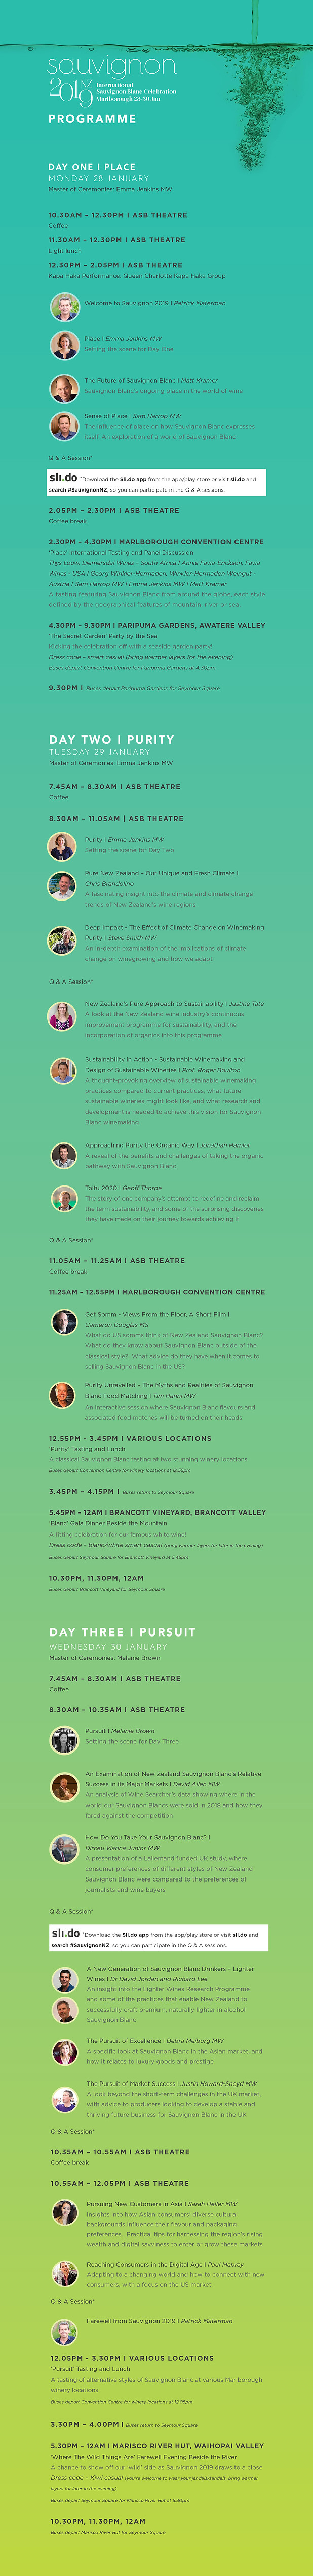 Sauvignon 2019 programme for web.jpg